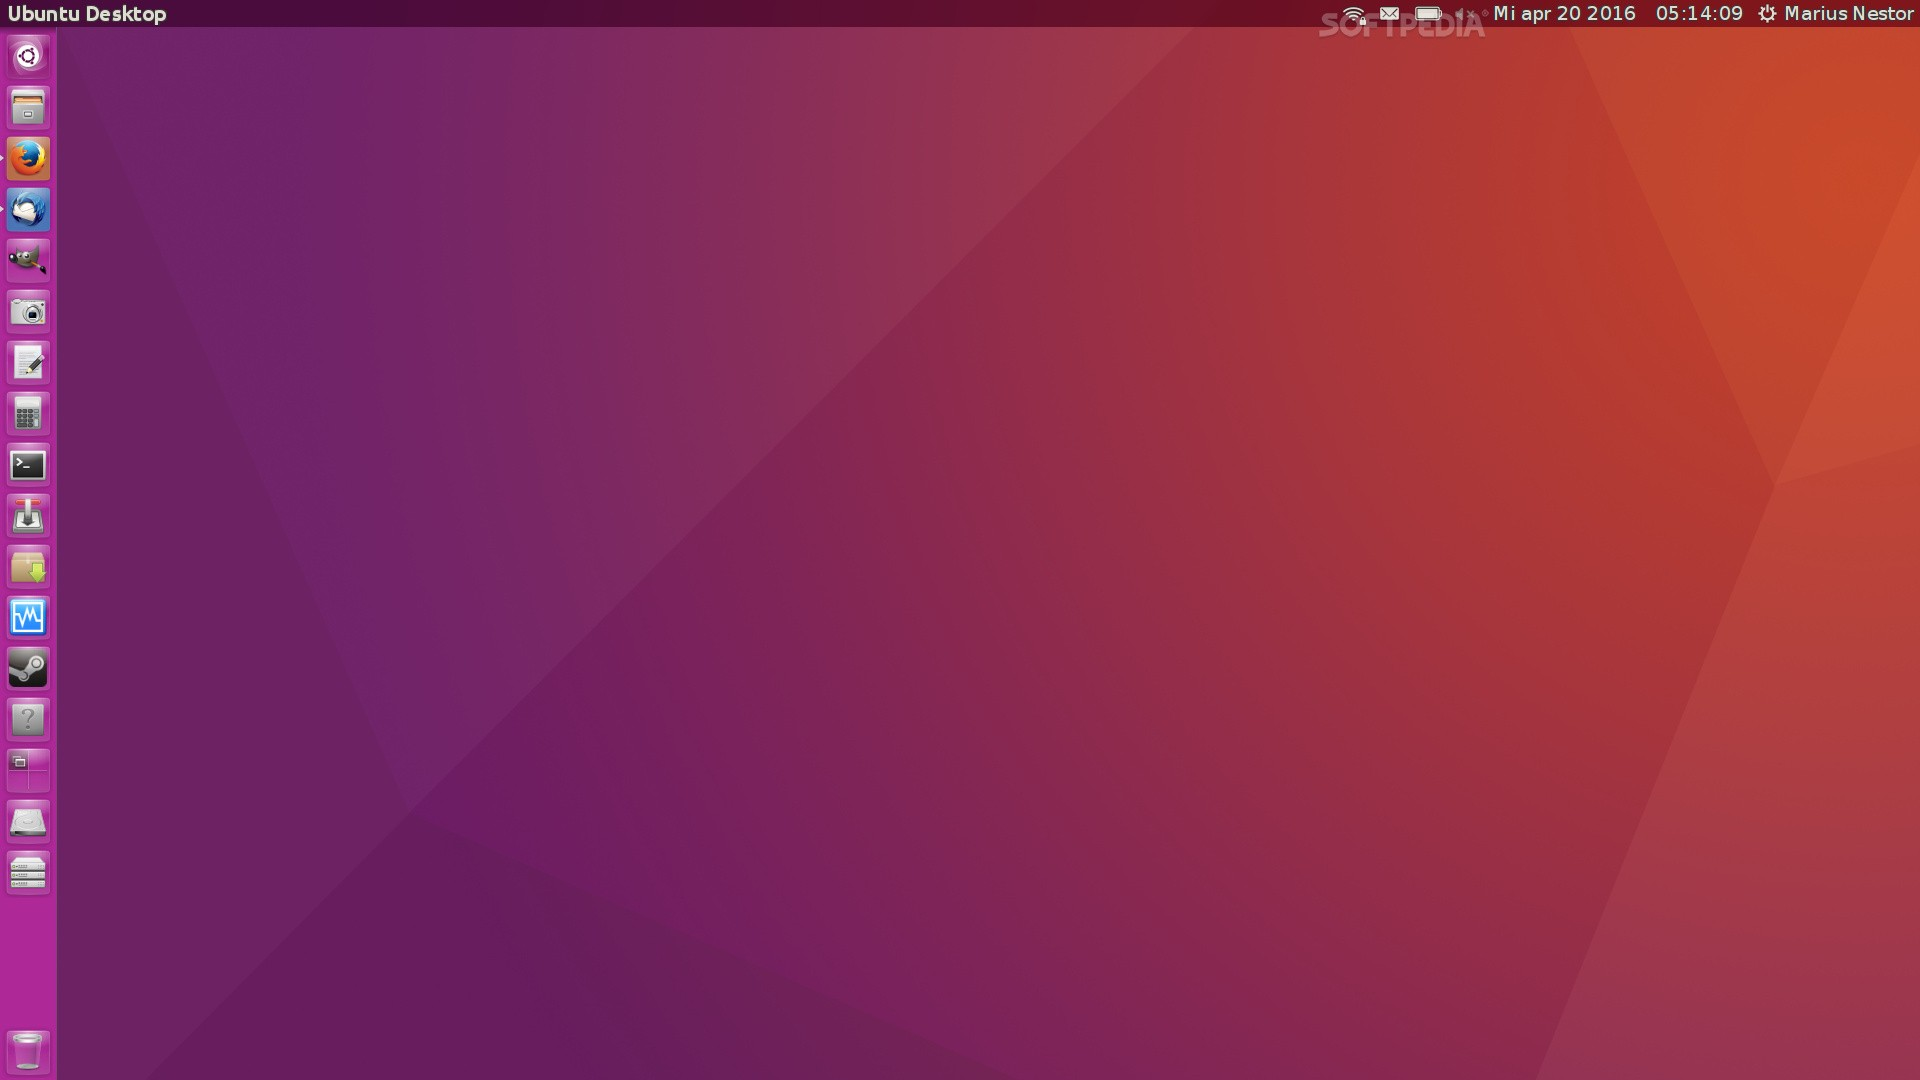 upgrade ubuntu 14 to 16